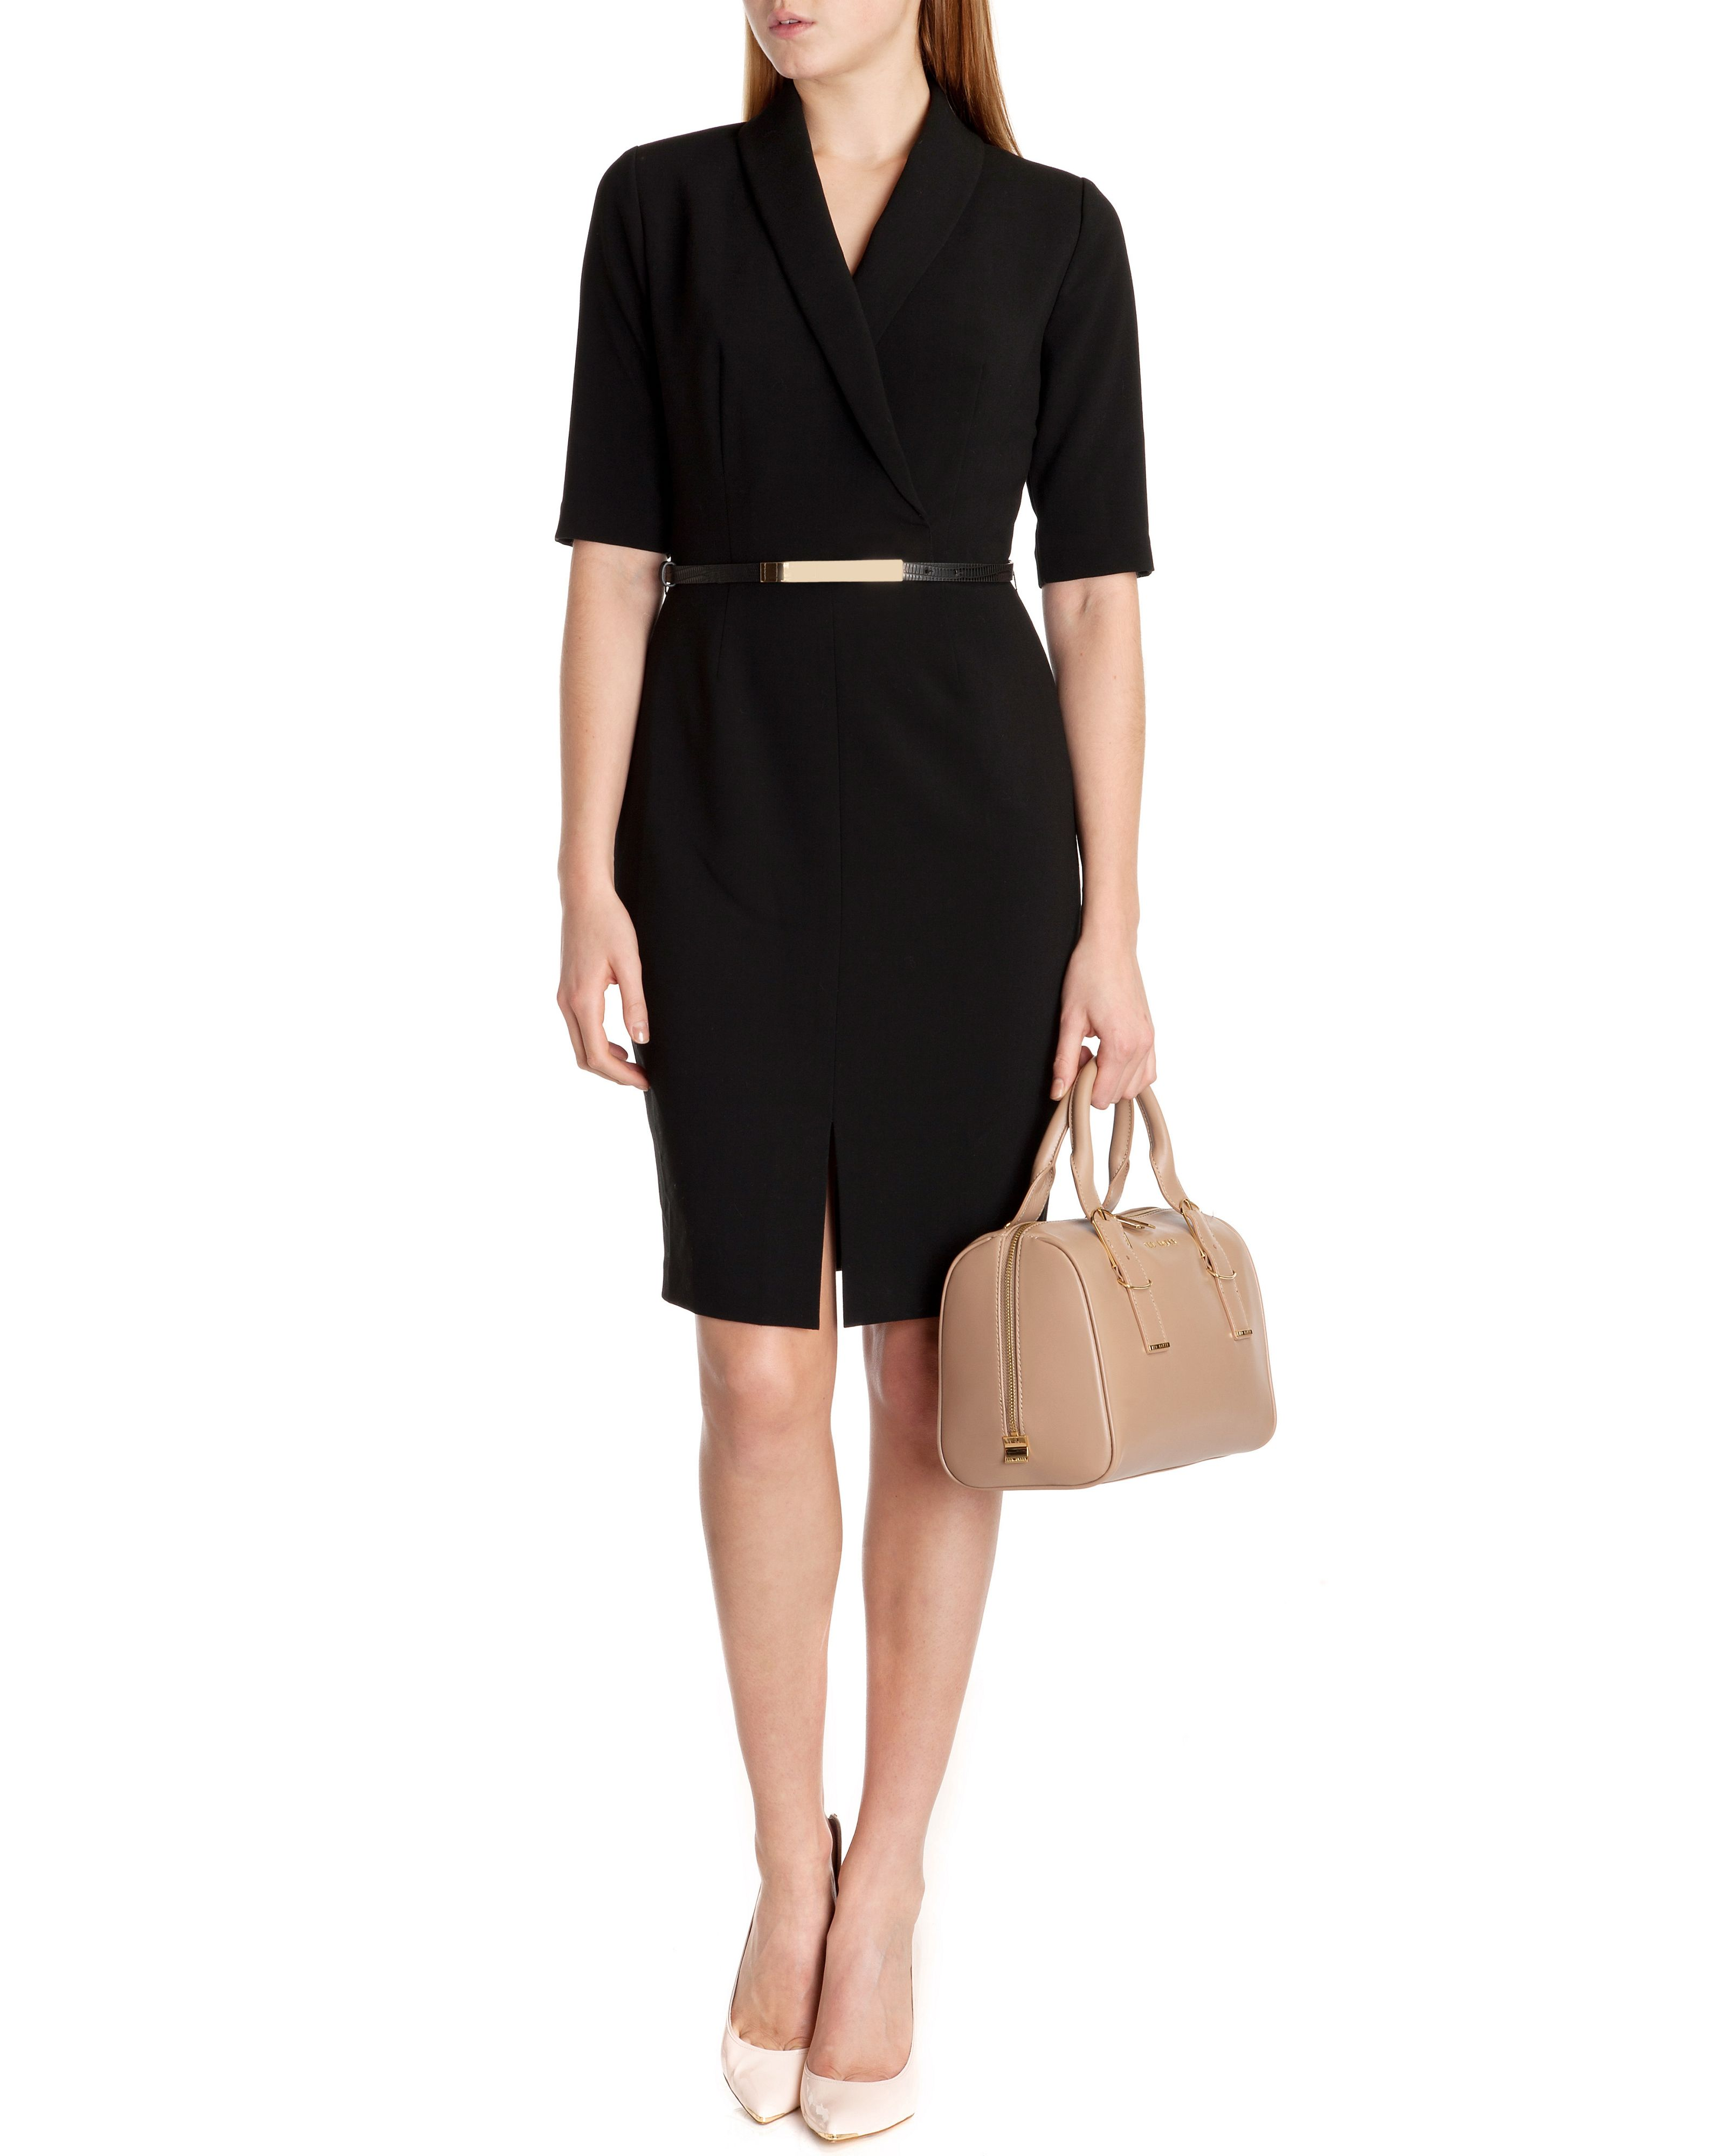 Sydnii pencil skirt dress